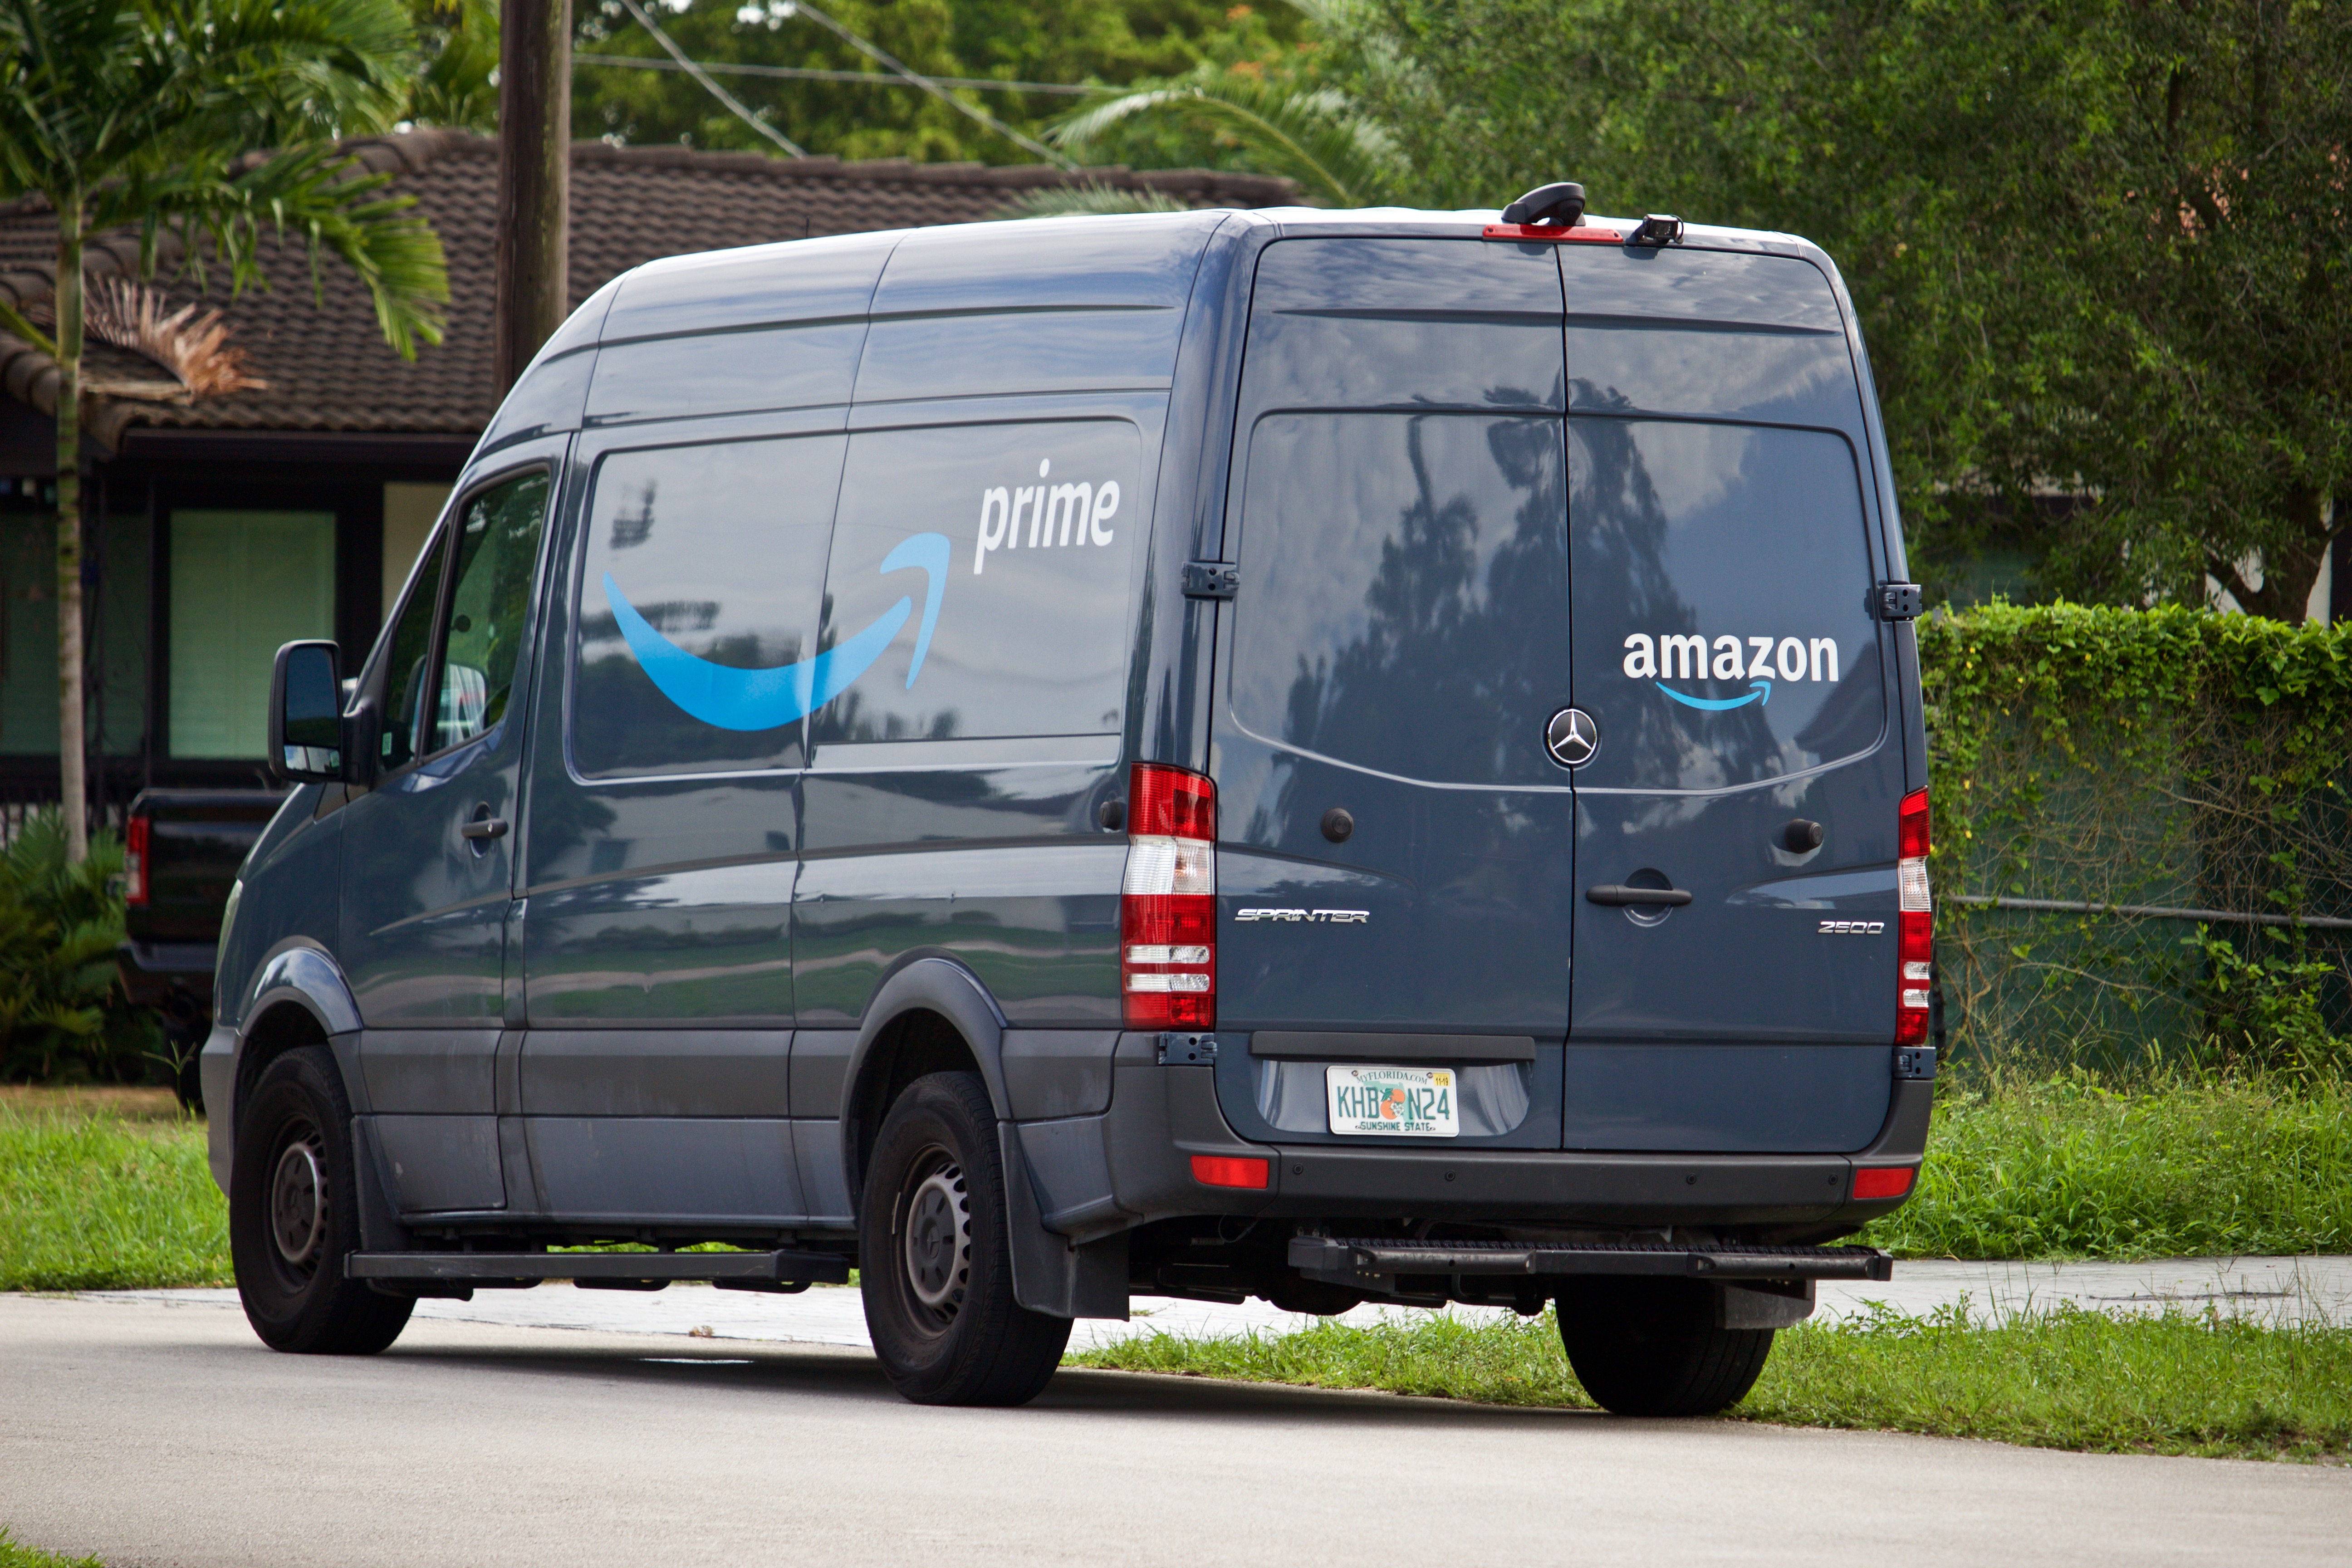 Westlake Legal Group Amazon-Truck-iStock Amazon delivery driver's hilarious reaction to basket of treats outside Delaware home caught on video Gerren Keith Gaynor fox-news/us/us-regions/northeast/delaware fox-news/tech/companies/amazon fox news fnc/lifestyle fnc c213ff12-abd8-580d-989a-383c795066a2 article /FOX NEWS/LIFESTYLE/REAL ESTATE